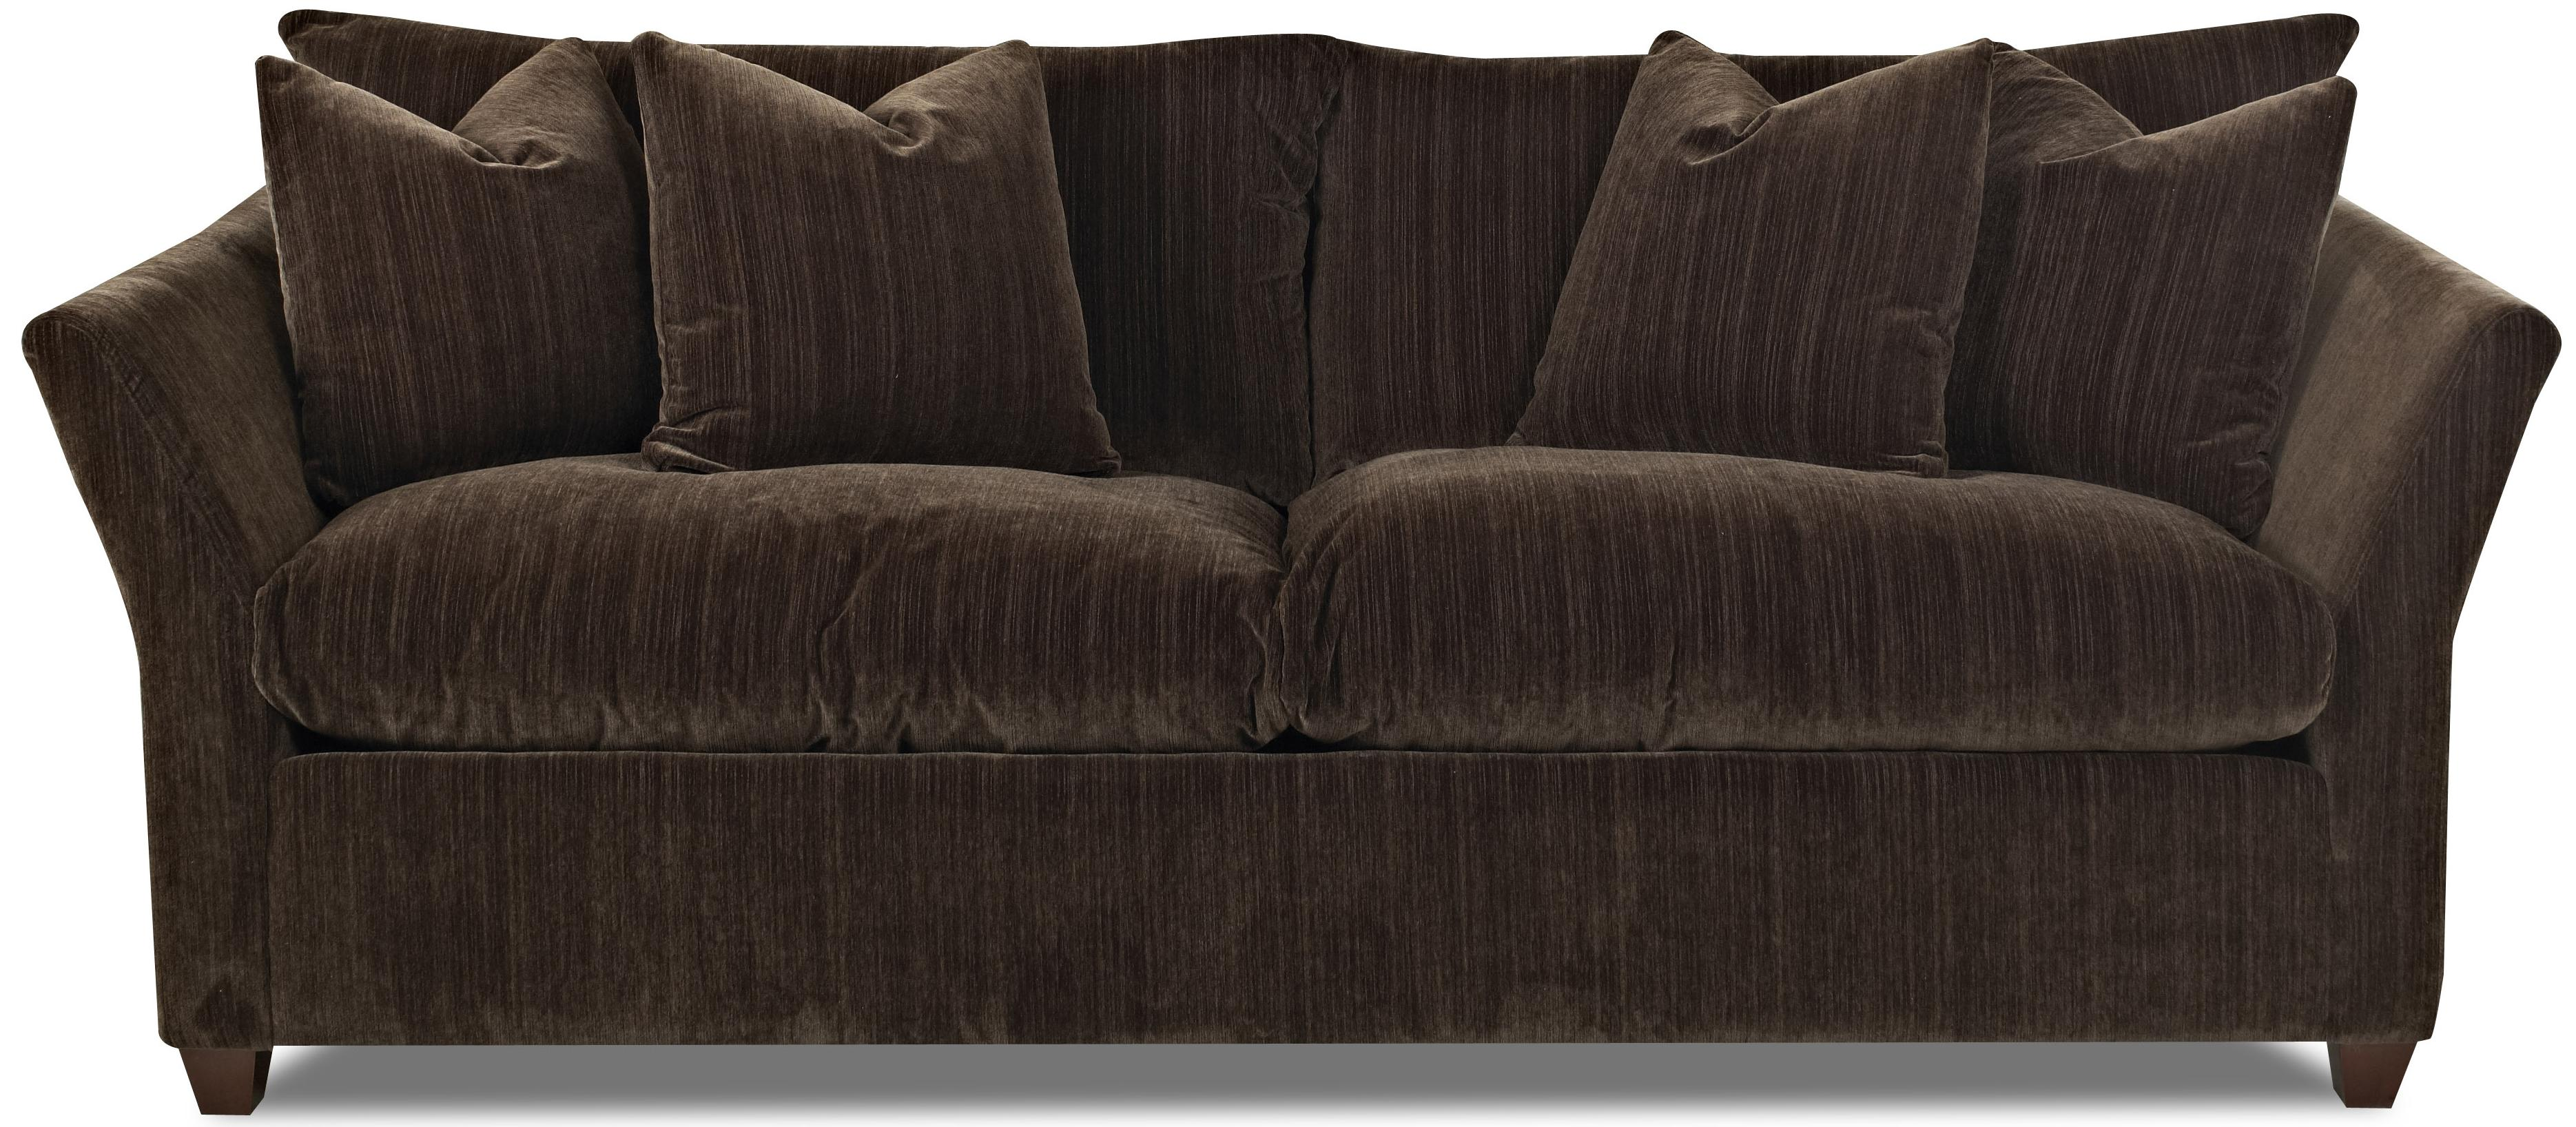 Down Blend Cushion Sofa